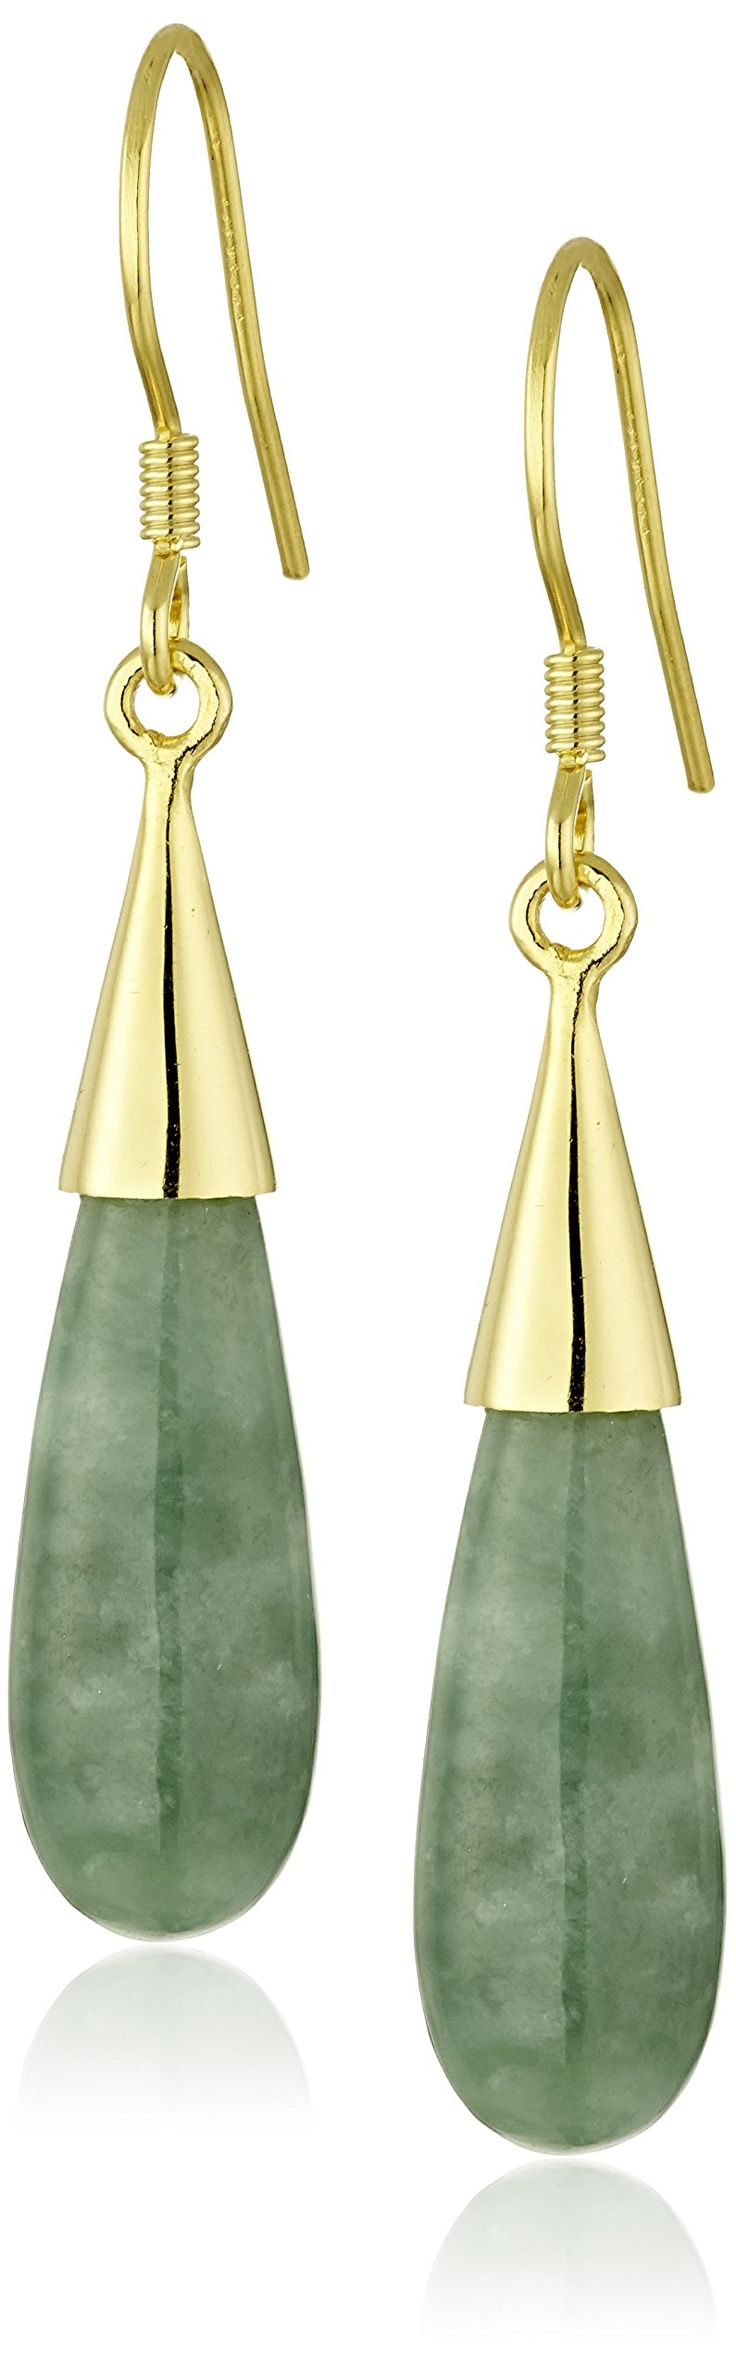 18k Yellow Gold Plated Sterling Silver Jade Tear Drop Earrings: